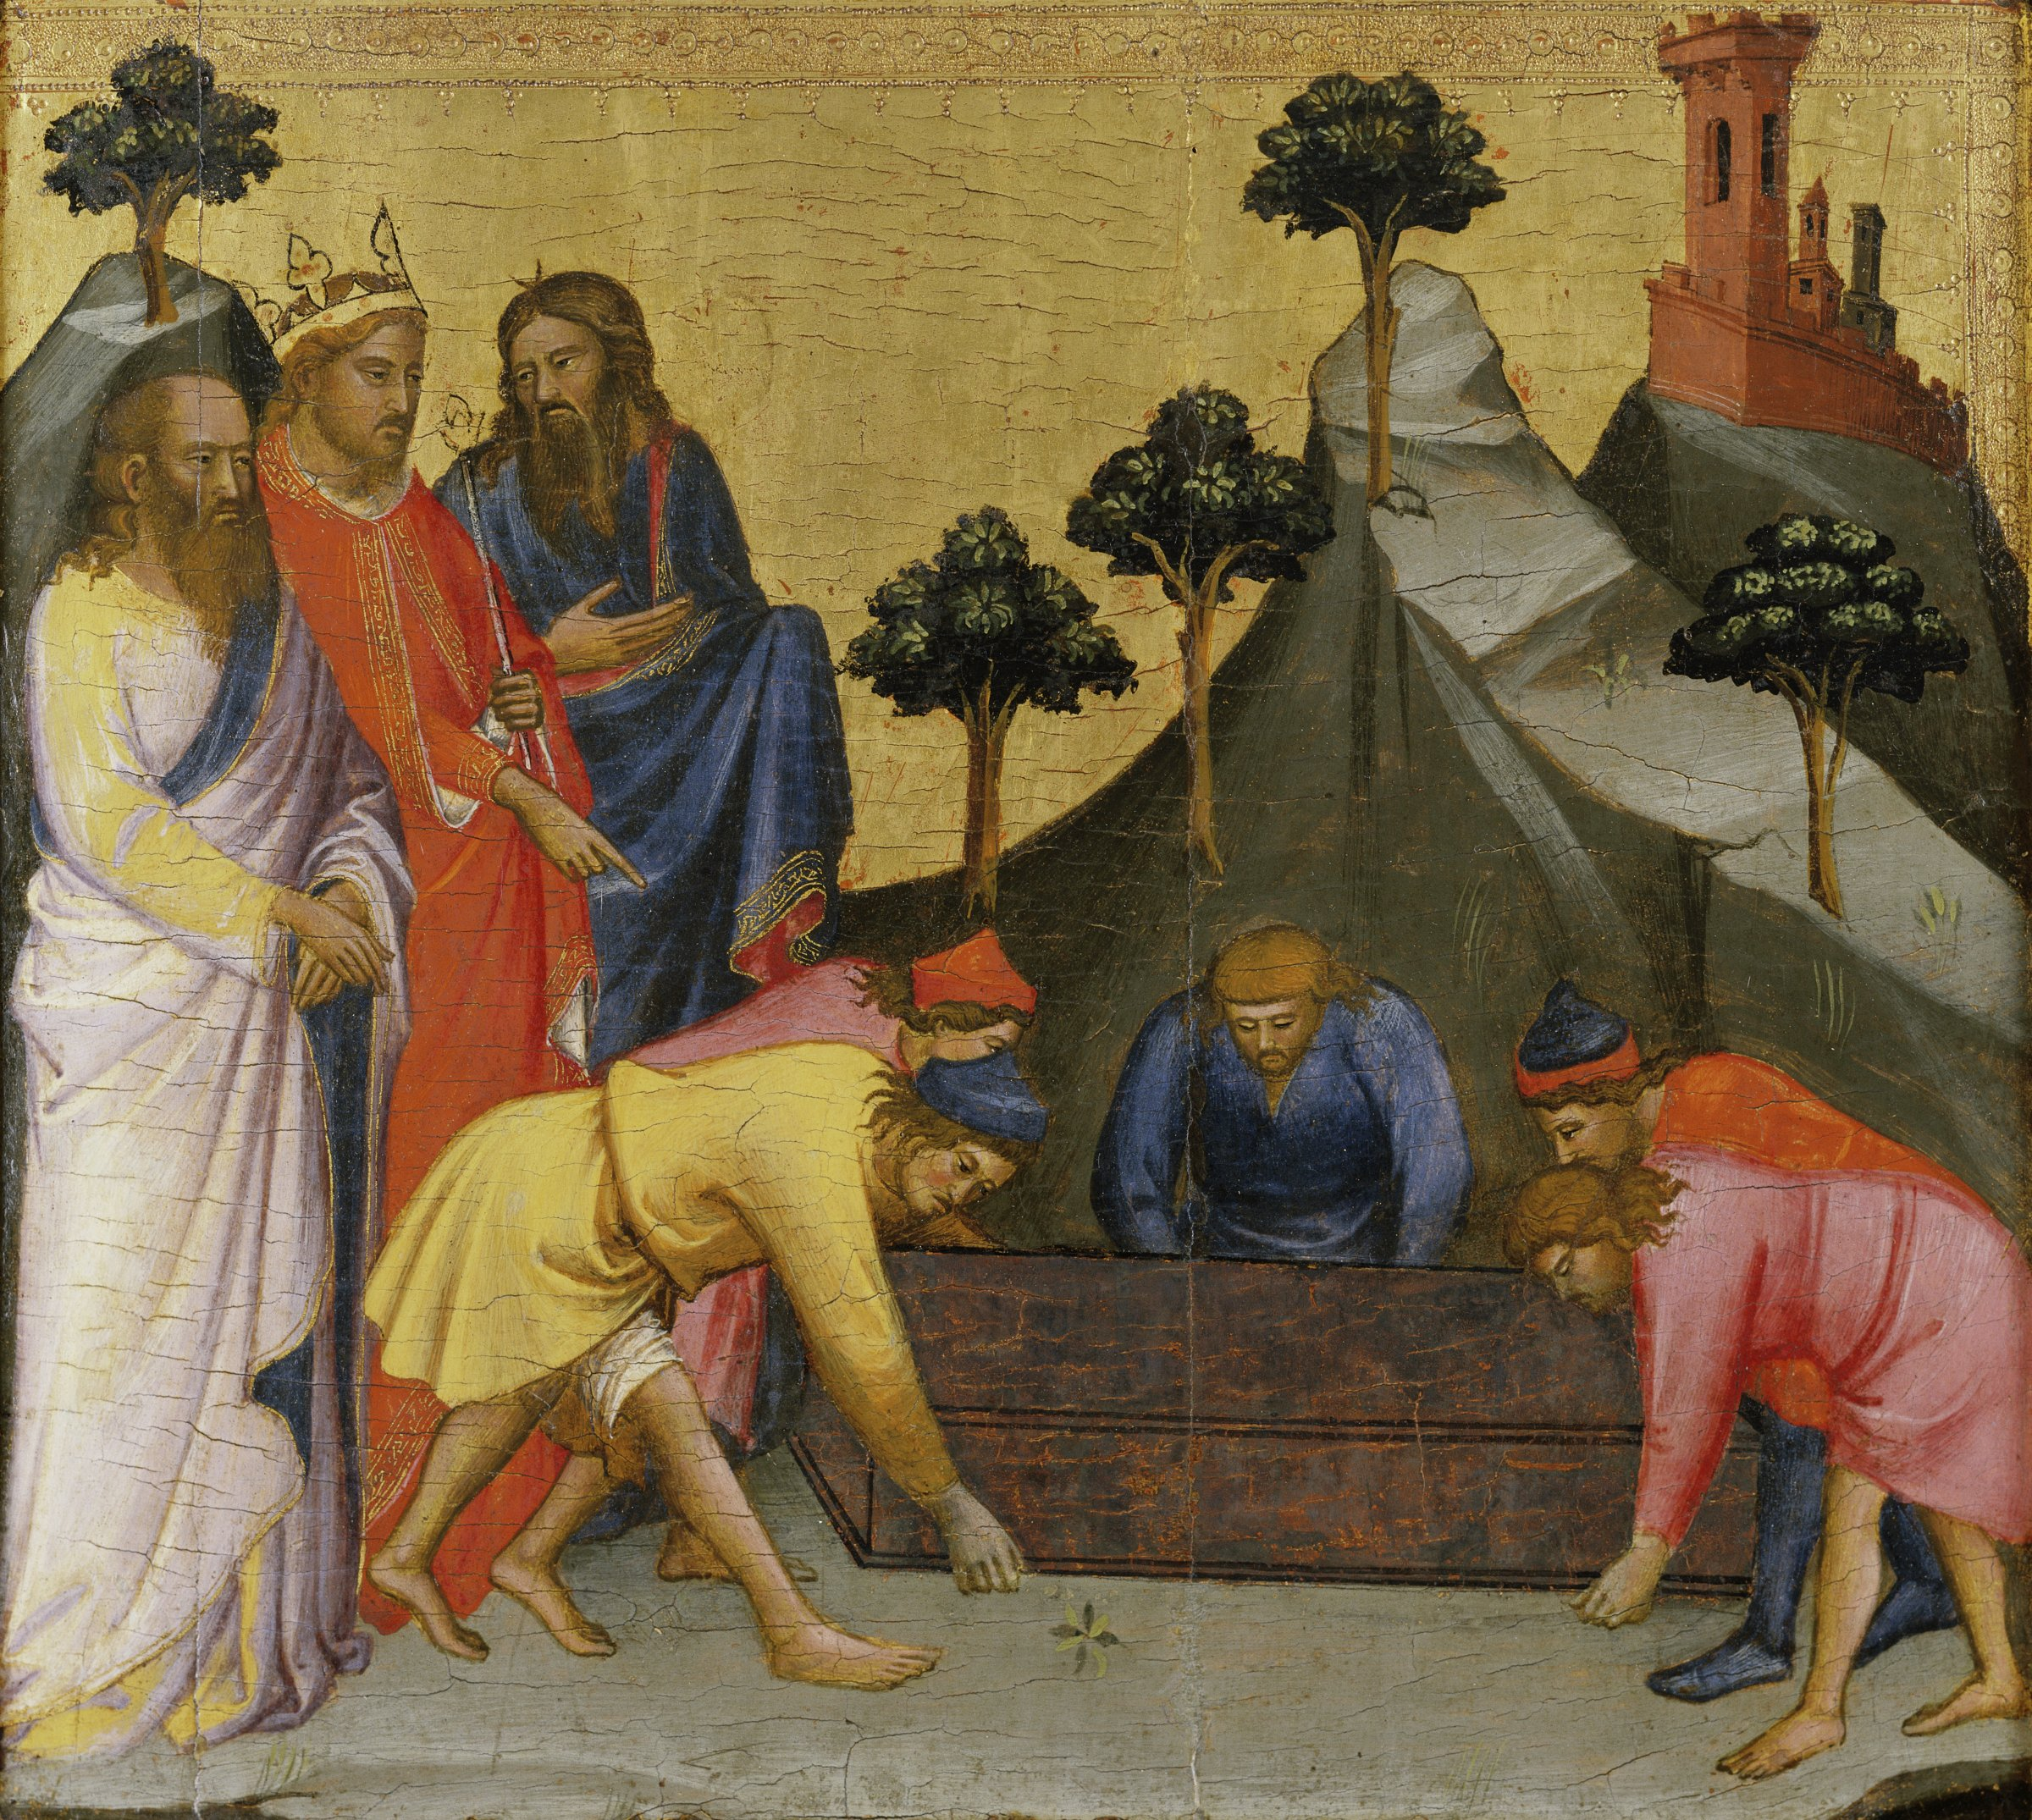 This painting depicts an episode from the legend of the Four Crowned Martyrs who were Christian sculptors working for the Roman Emperor Diocletian. When the sculptors refused to carve a statue of a pagan god, Diocletian ordered that the sculptors be sealed alive in lead coffins and thrown into a river. On the left, Diocletian, identified by his crown, directs a group of men in the center to lift a coffin.